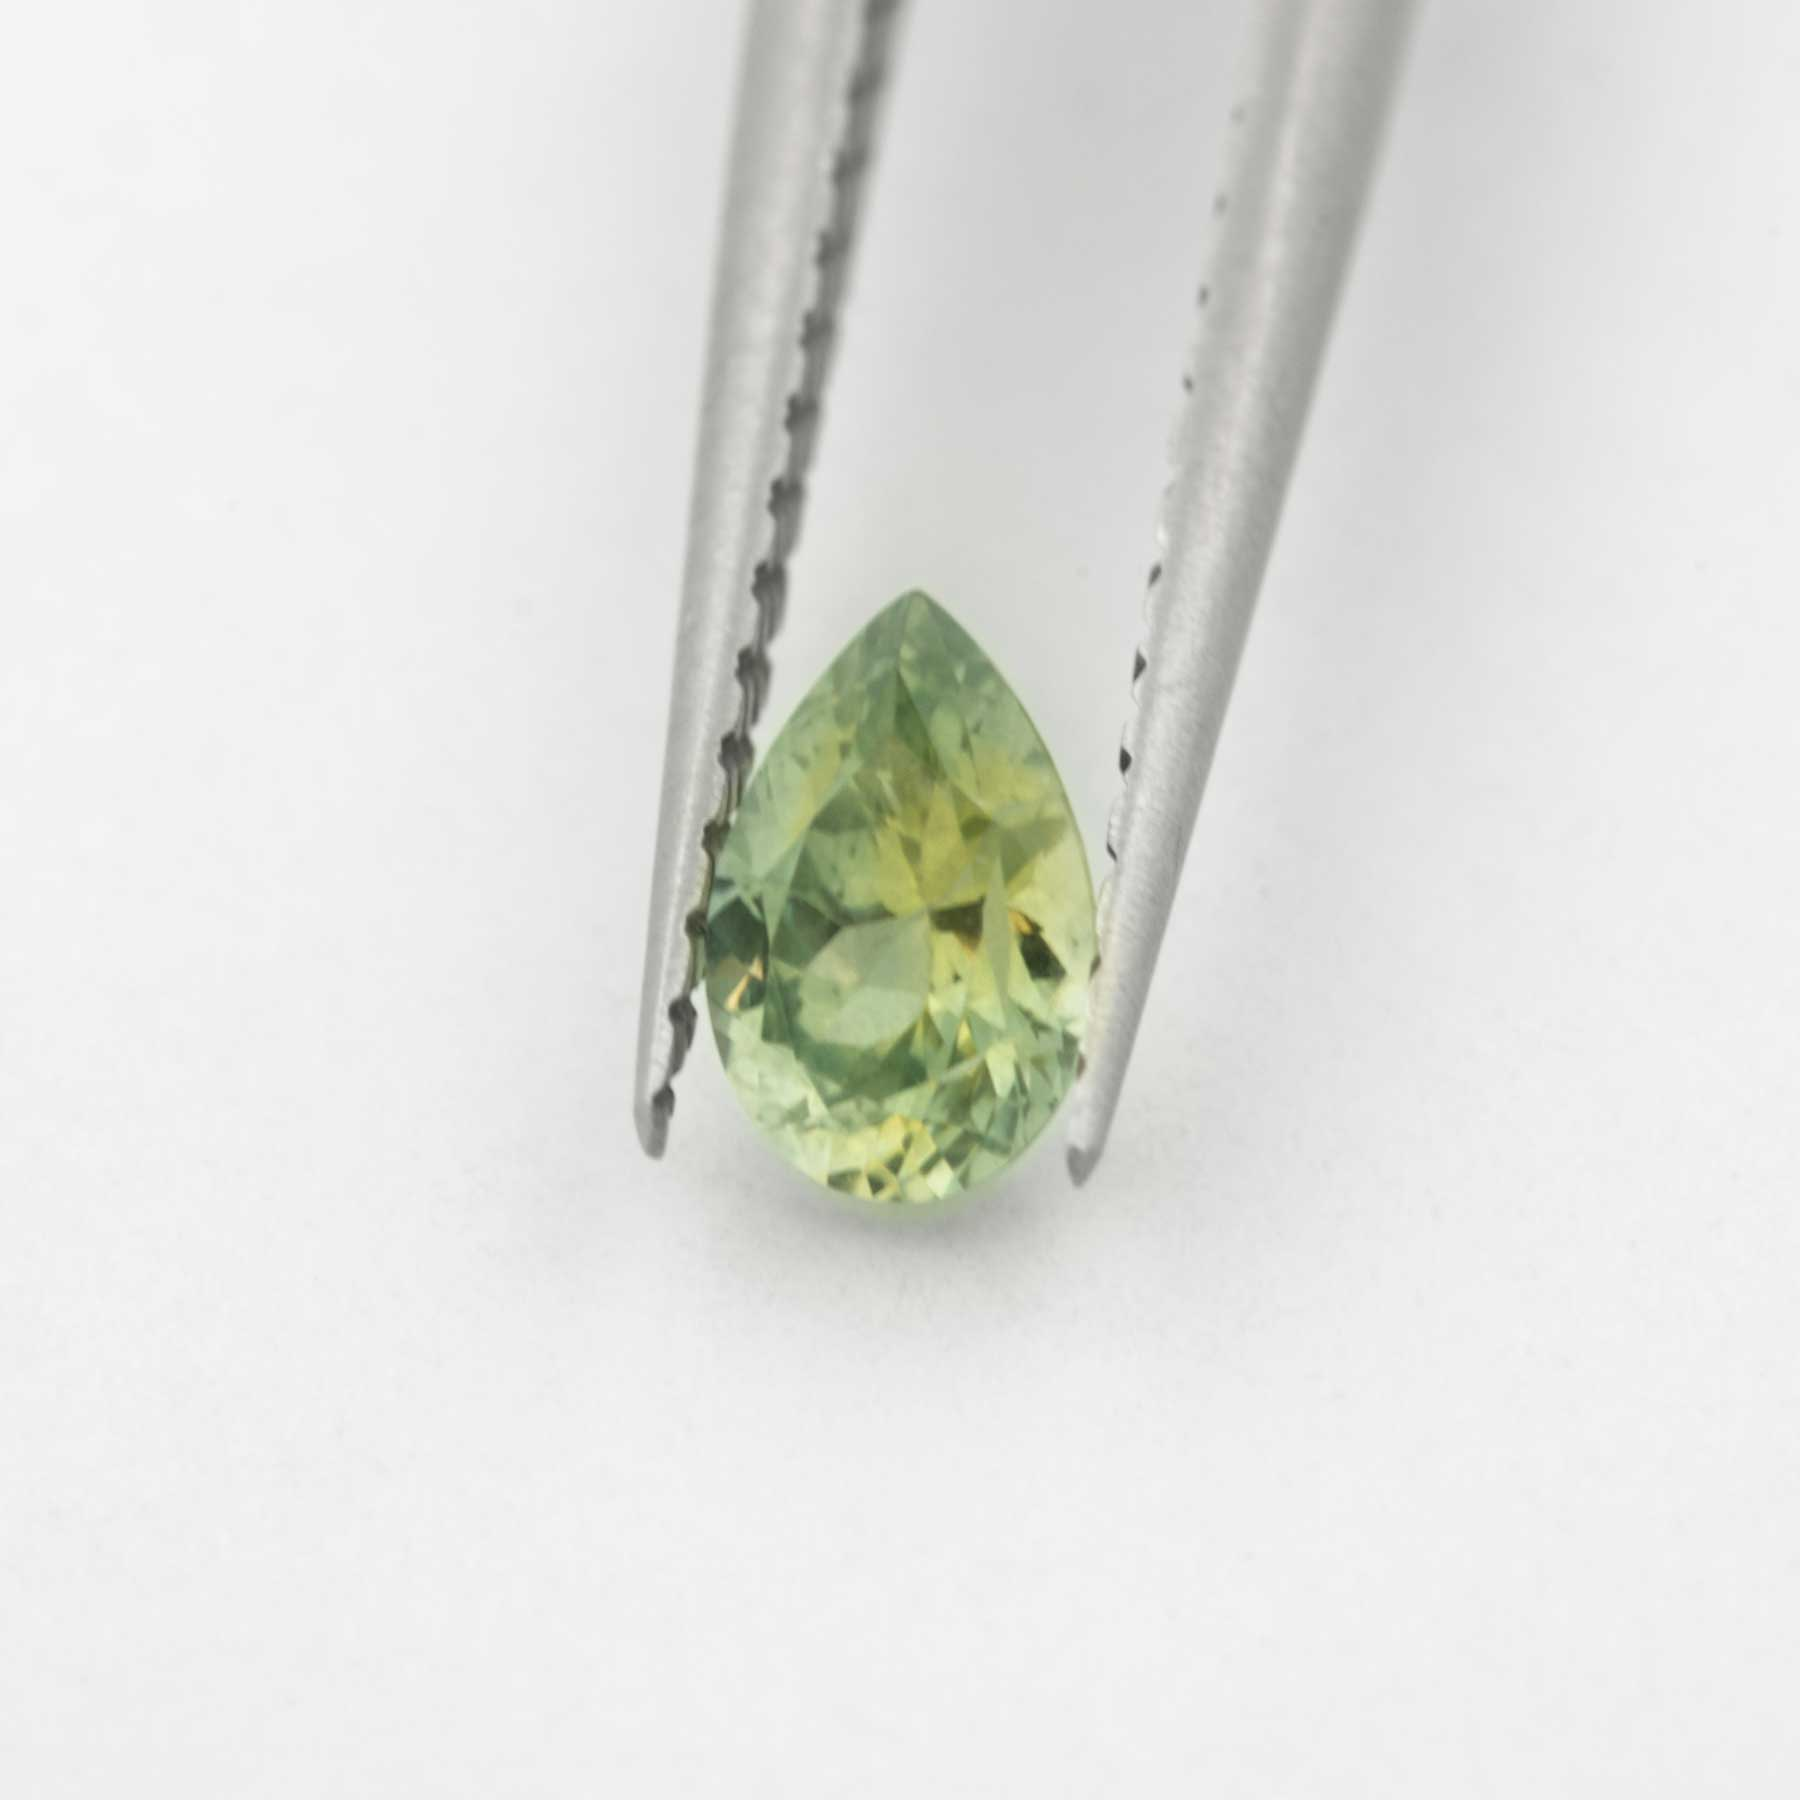 Unique Ethical Pear Shaped Green Yellow Montana Sapphire